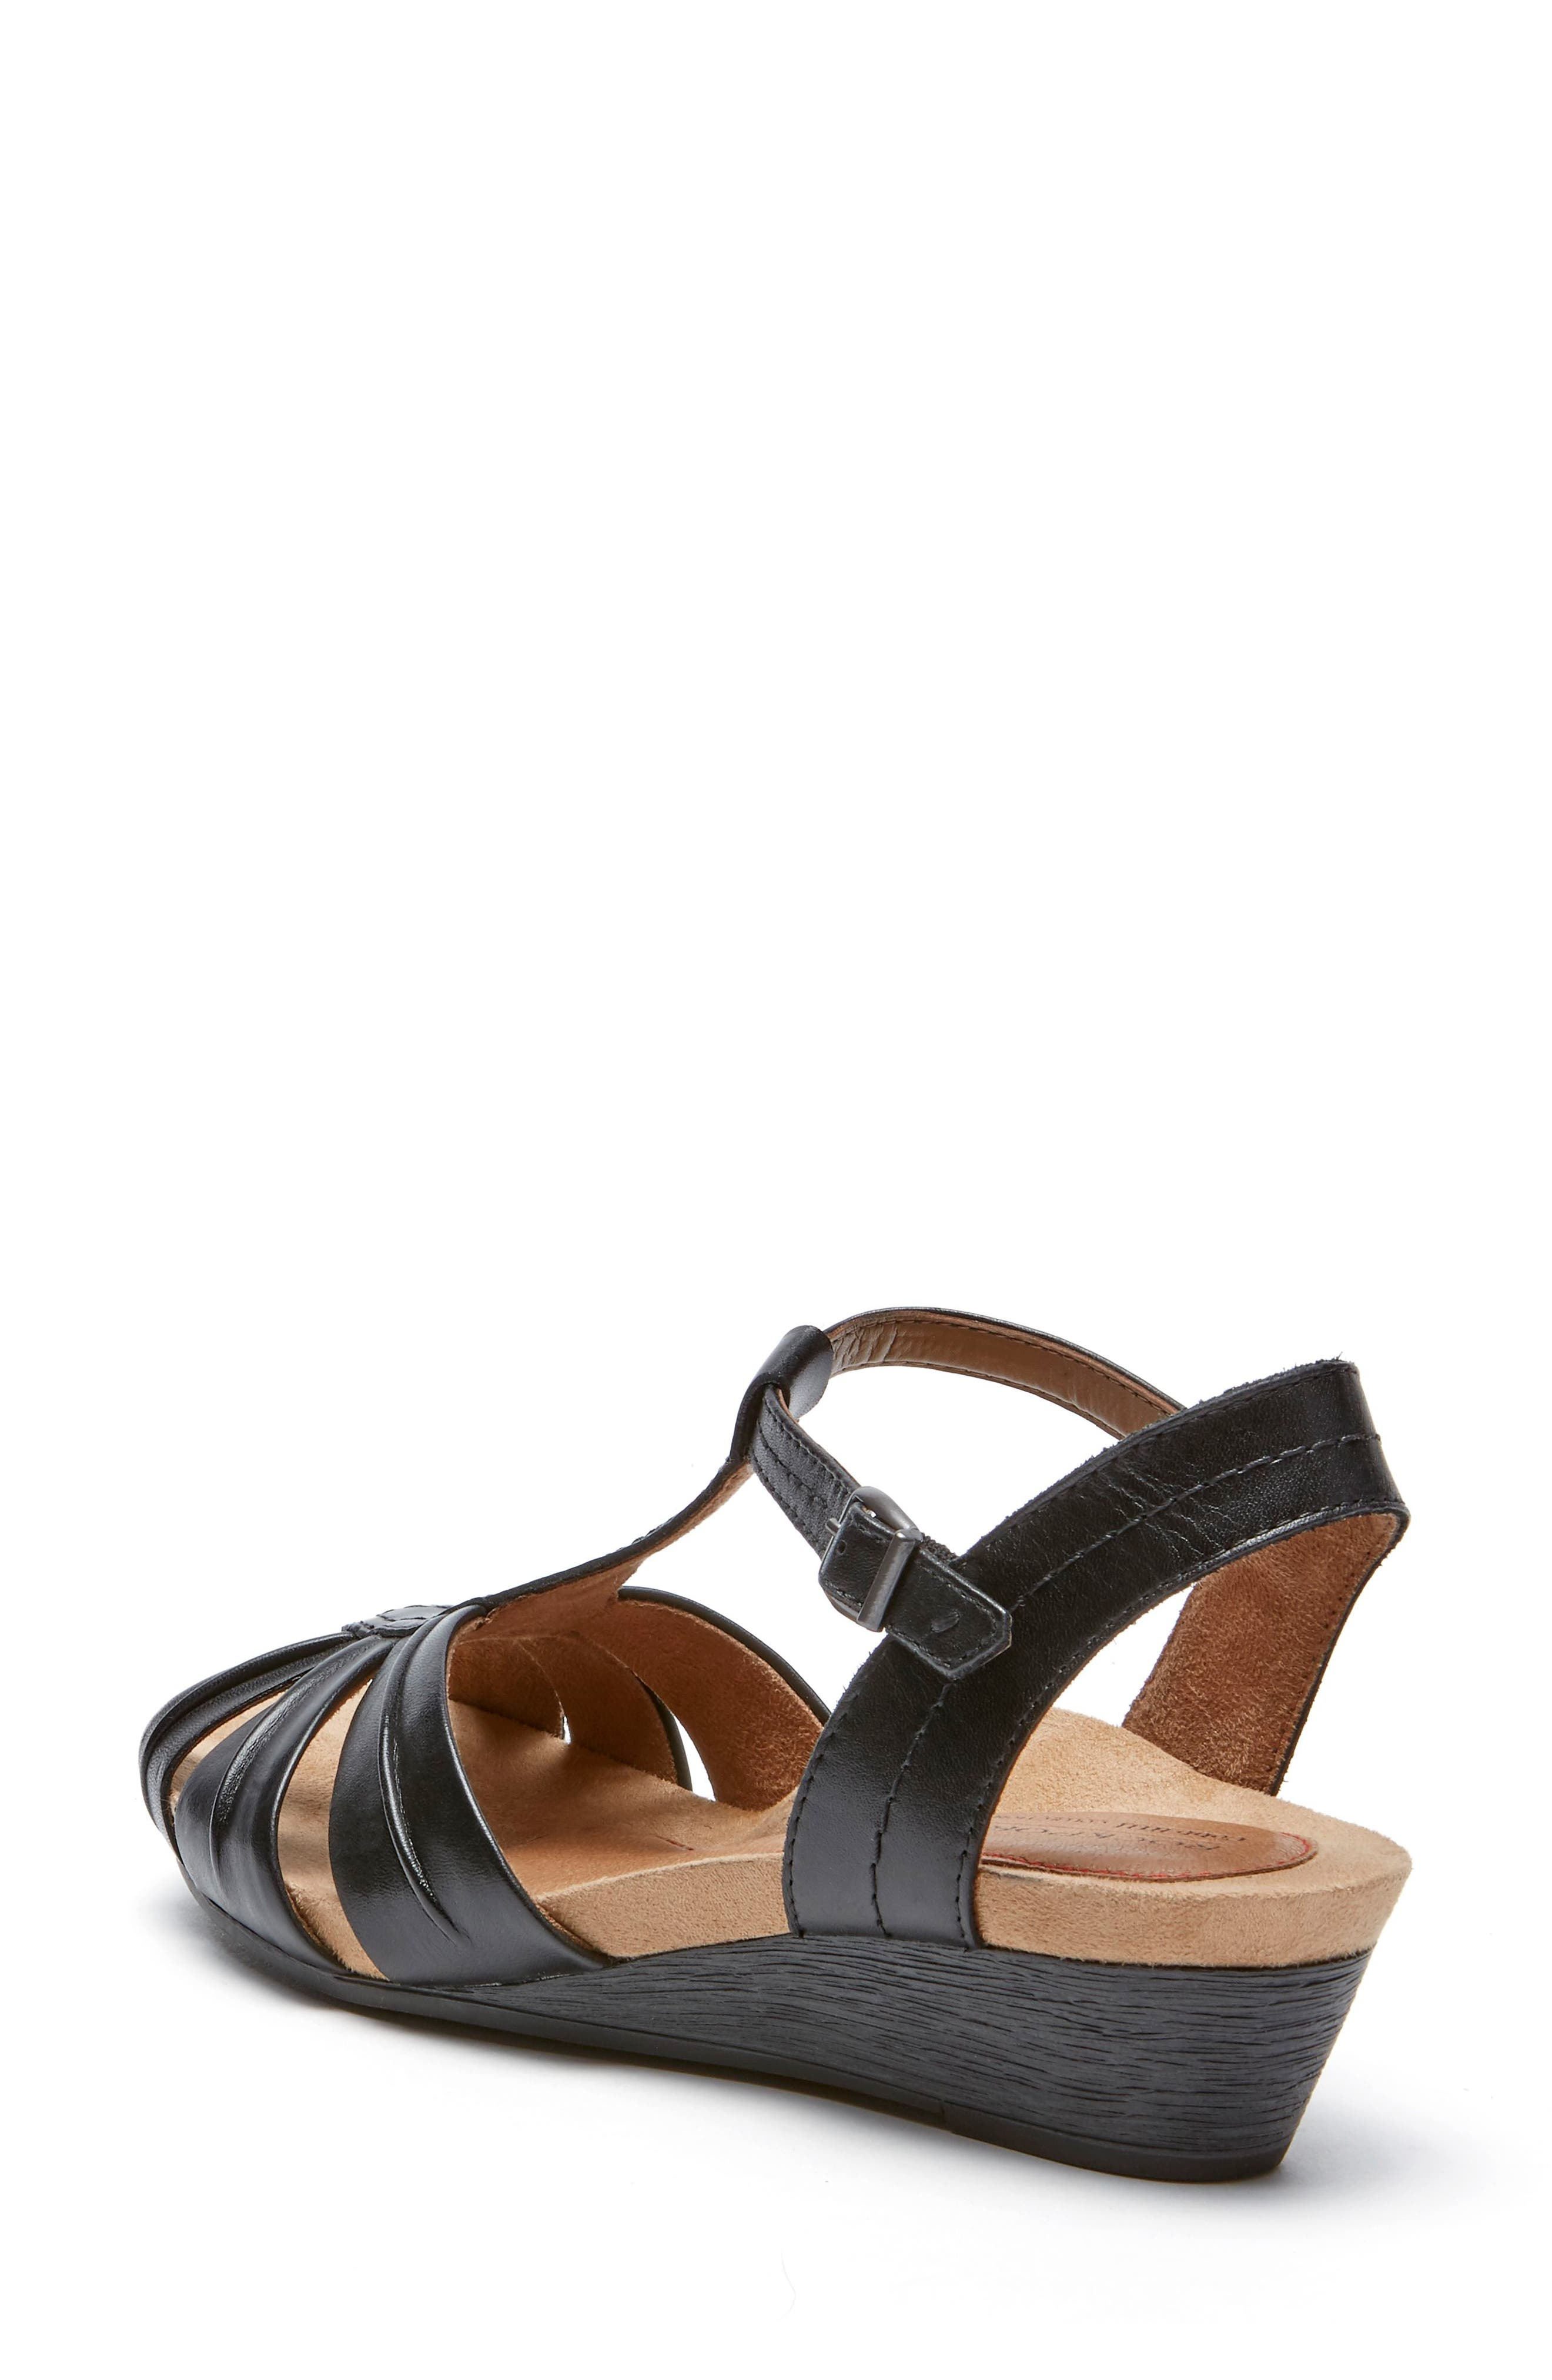 Hollywood Pleat Wedge Sandal,                             Alternate thumbnail 2, color,                             Black Leather